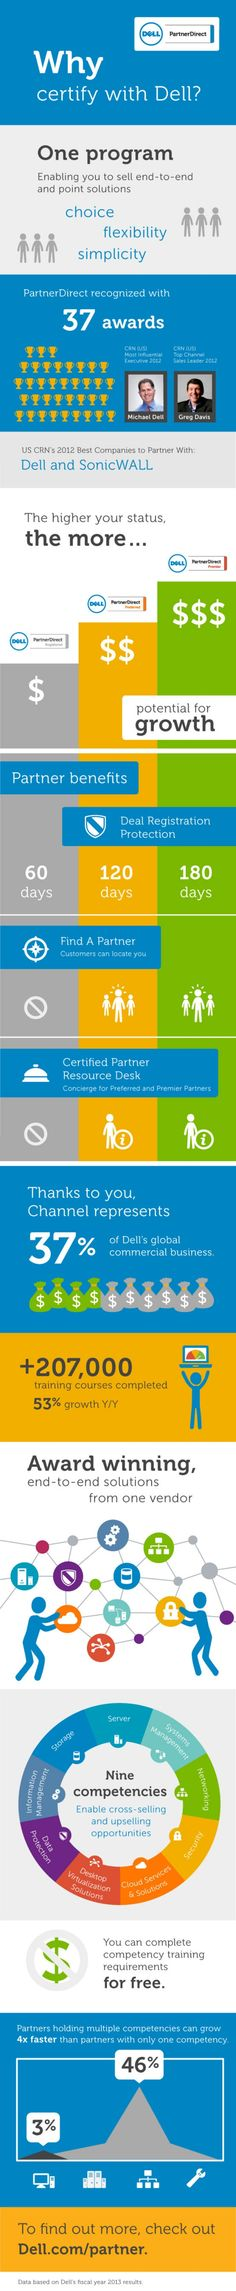 f6b080d3789e Infographic  Why Certify with Dell Social Marketing